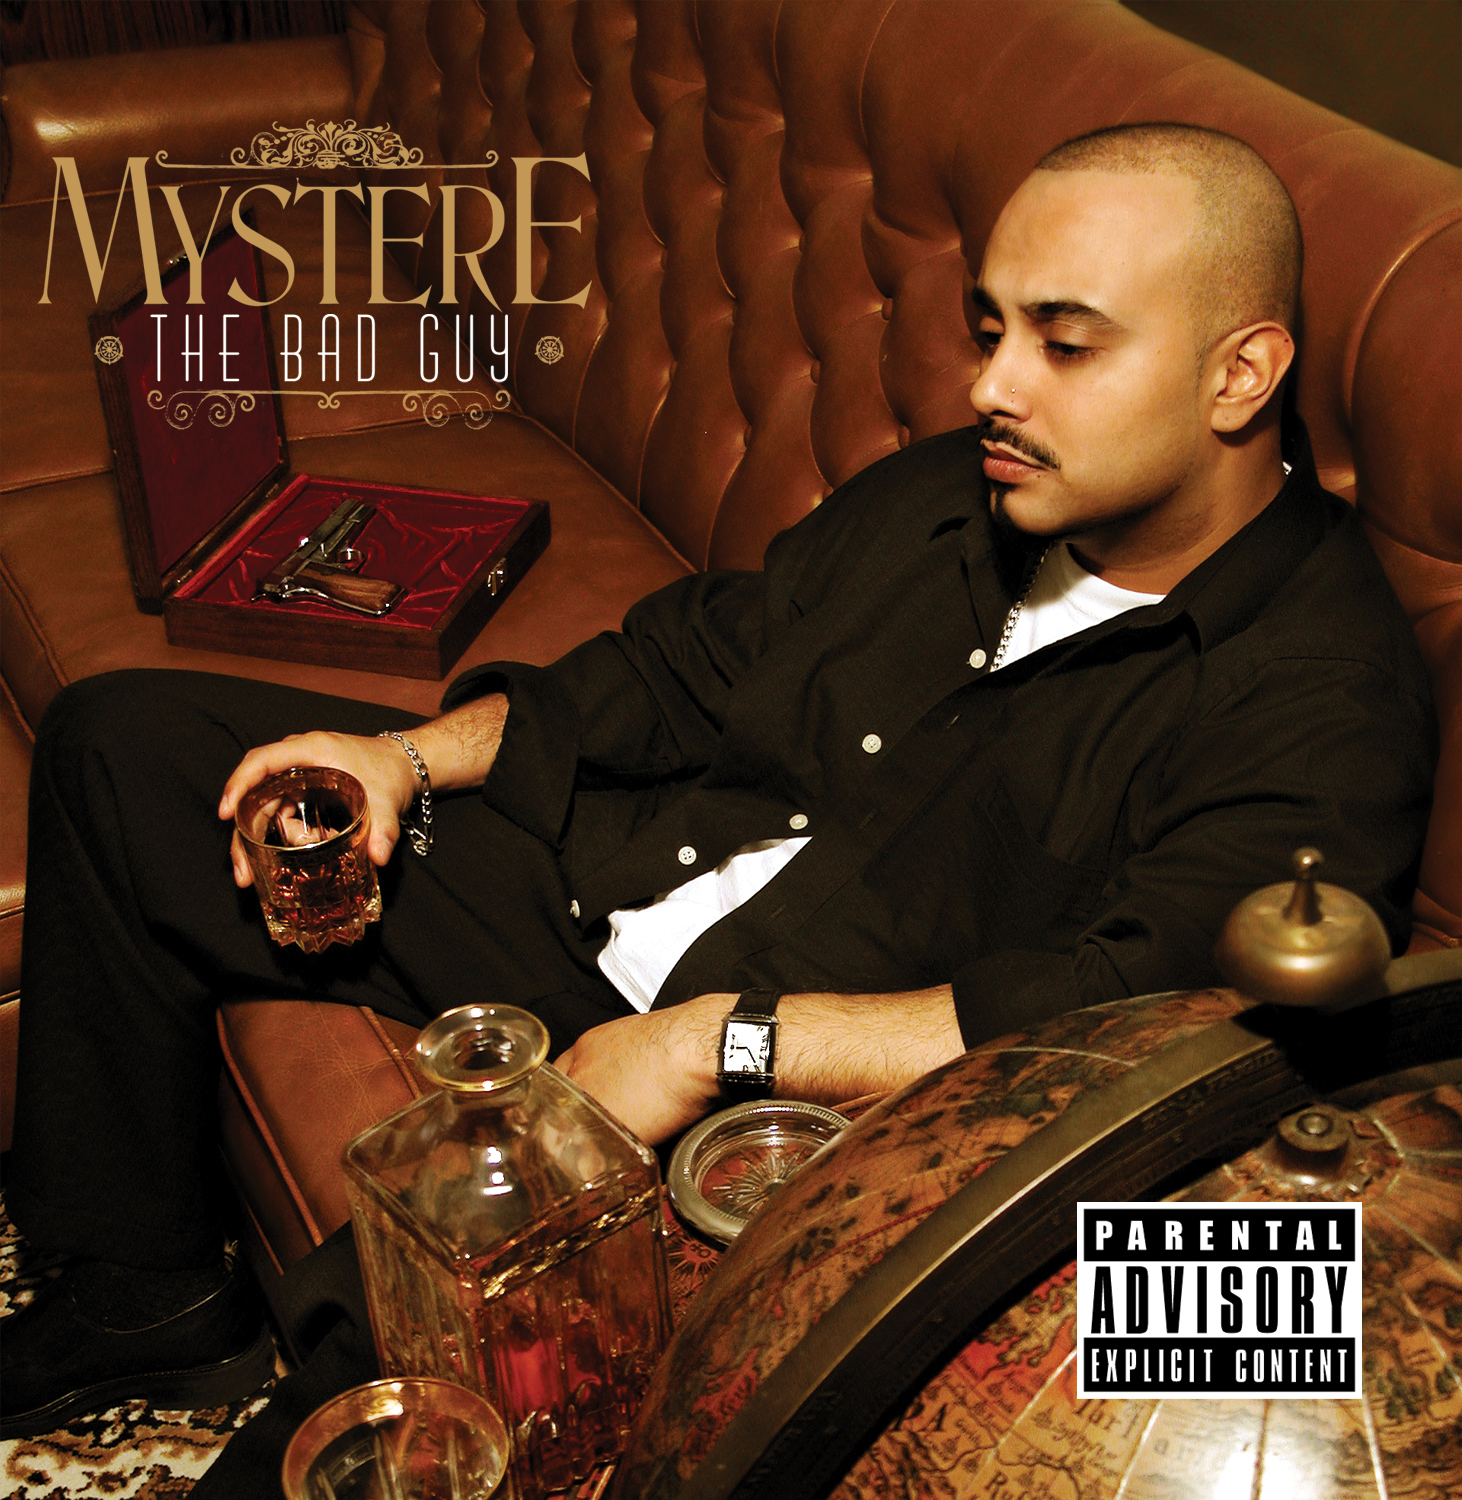 The Bad Guy Cover Get your copy of MysterEs The Bad Guy on iTunes!